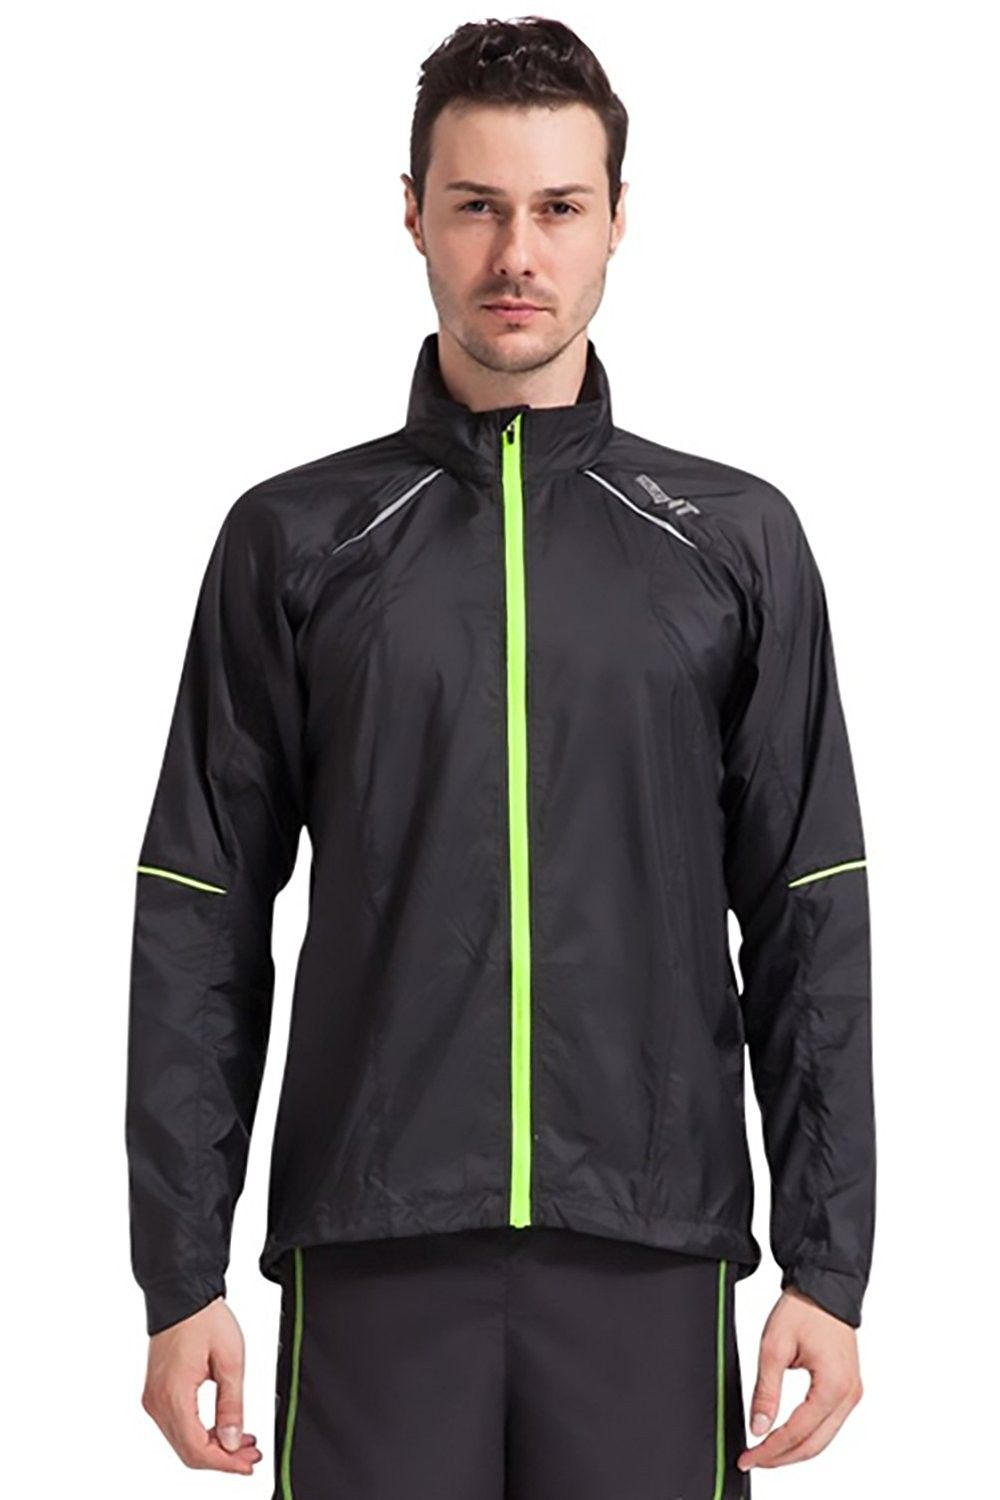 Men S Ultra Light Activewear Jacket With Light Reflective Material And Earphone Loops Black Cx17 Activewear Jackets Mens Lightweight Jacket Active Wear [ 1500 x 1000 Pixel ]